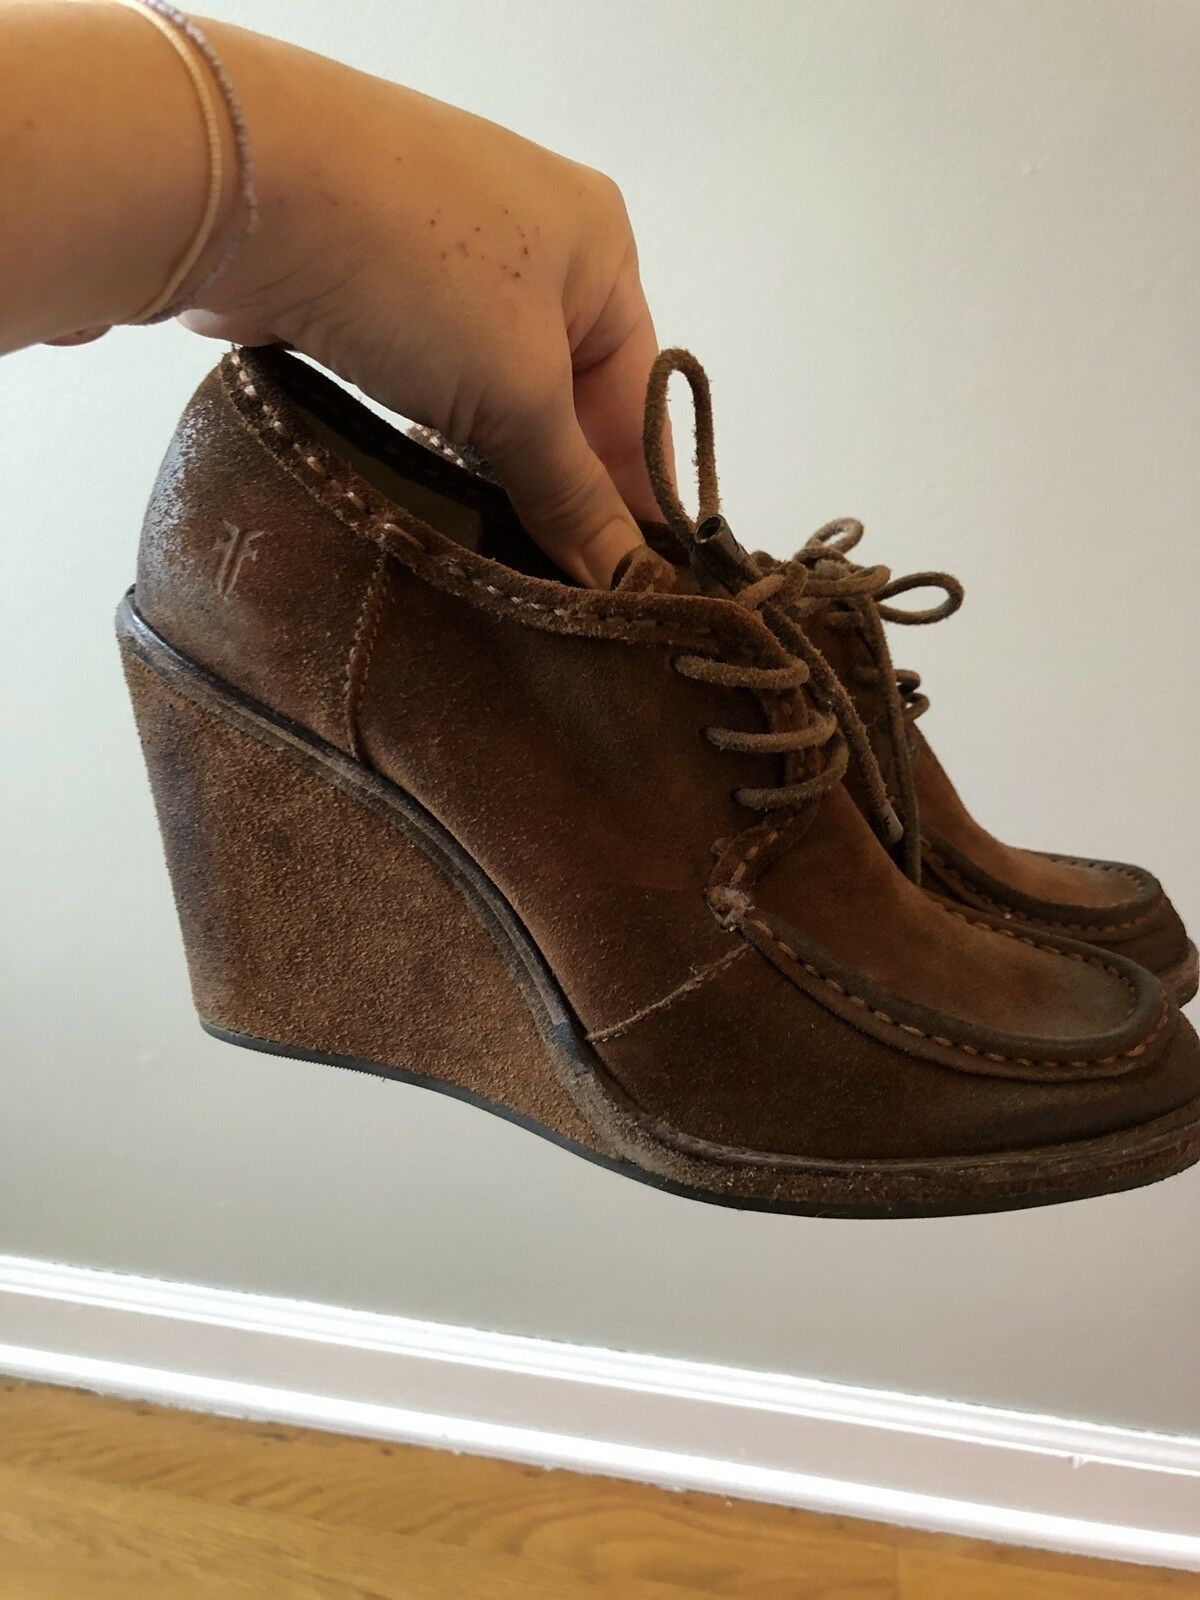 Frye Caroline Lace Up-Charcoal Braun Suede wedge Ankle Booties Größe 9